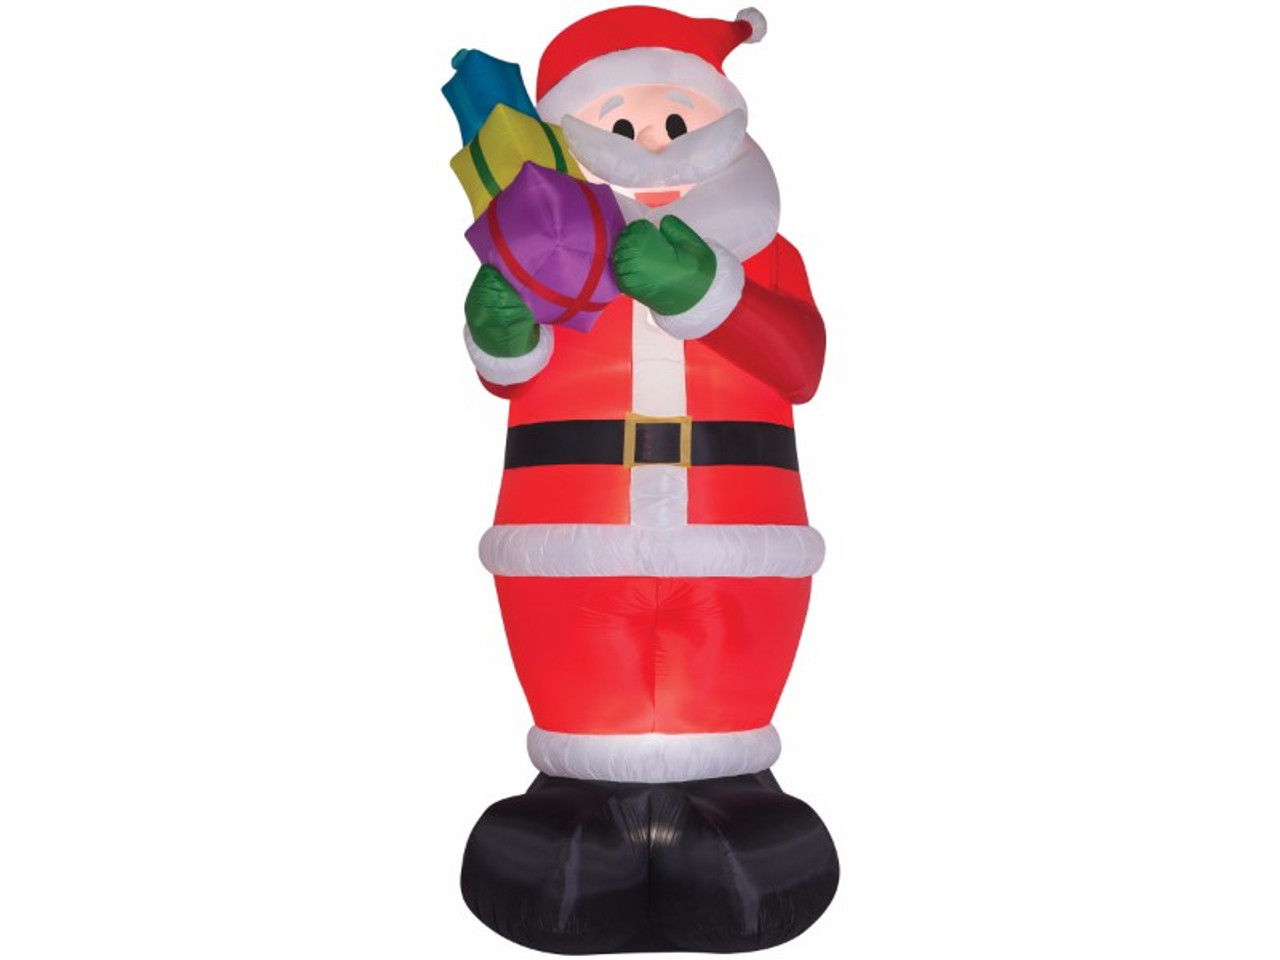 Bring An Enormous Amount Of Christmas Cheer To Your Neighborhood With This Colossal 16 Foot Tall